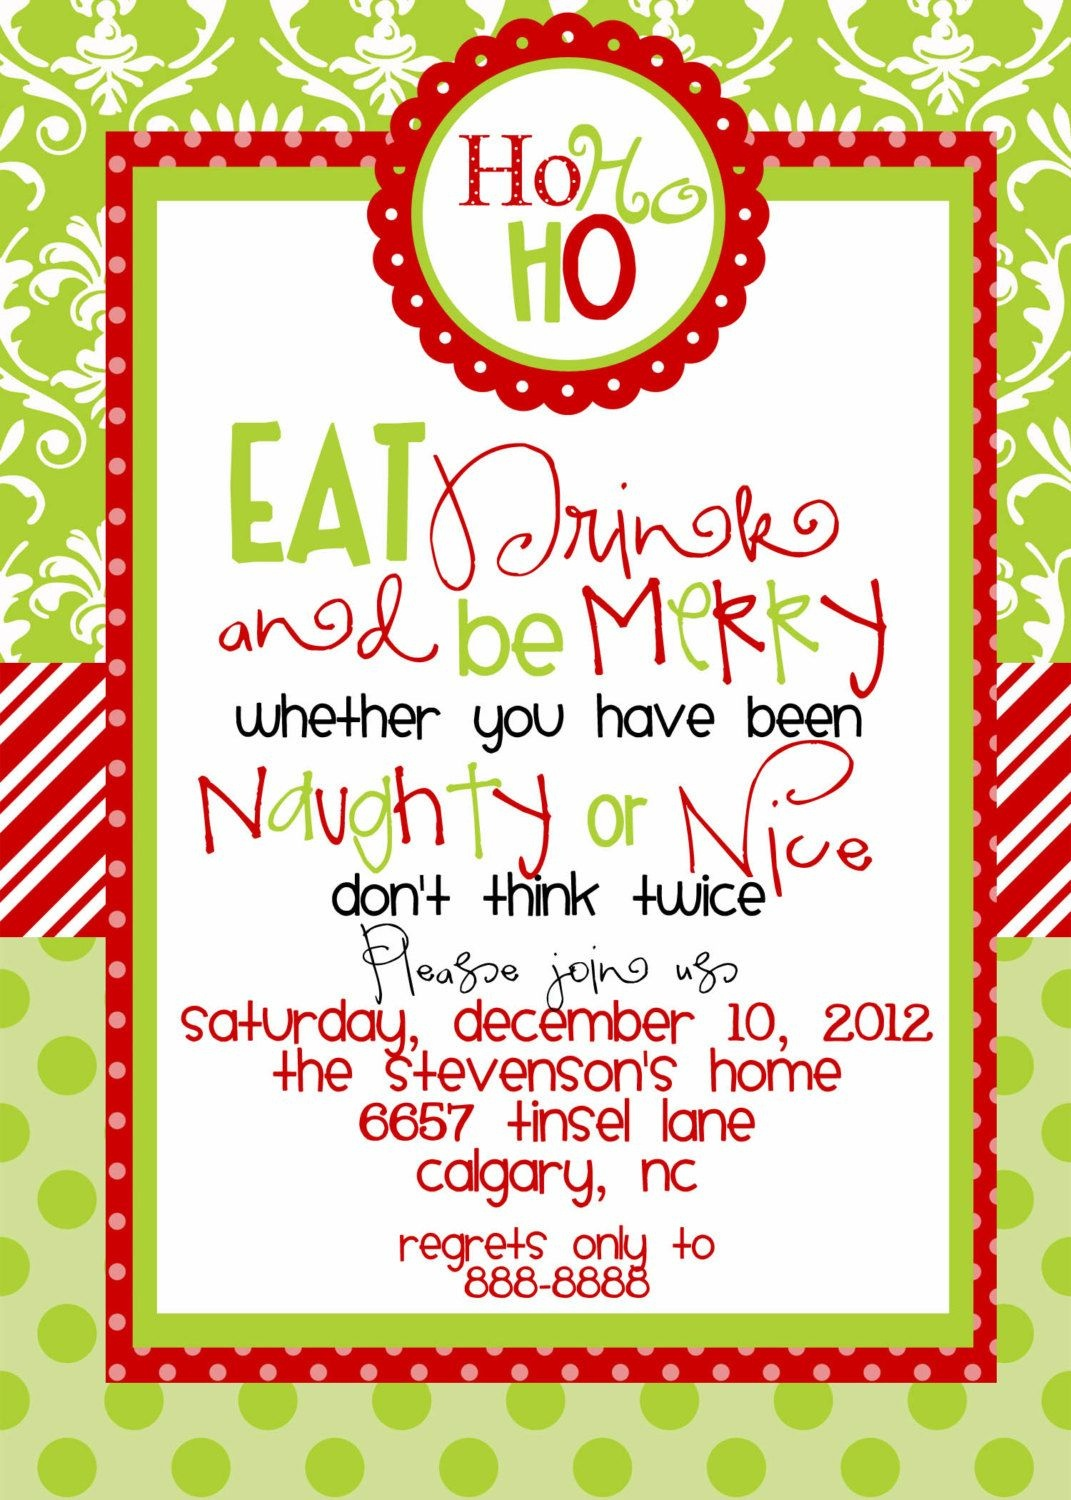 Custom Designed Christmas Party Invitations Eat Drink And Be Merry - Free Printable Christmas Party Invitations